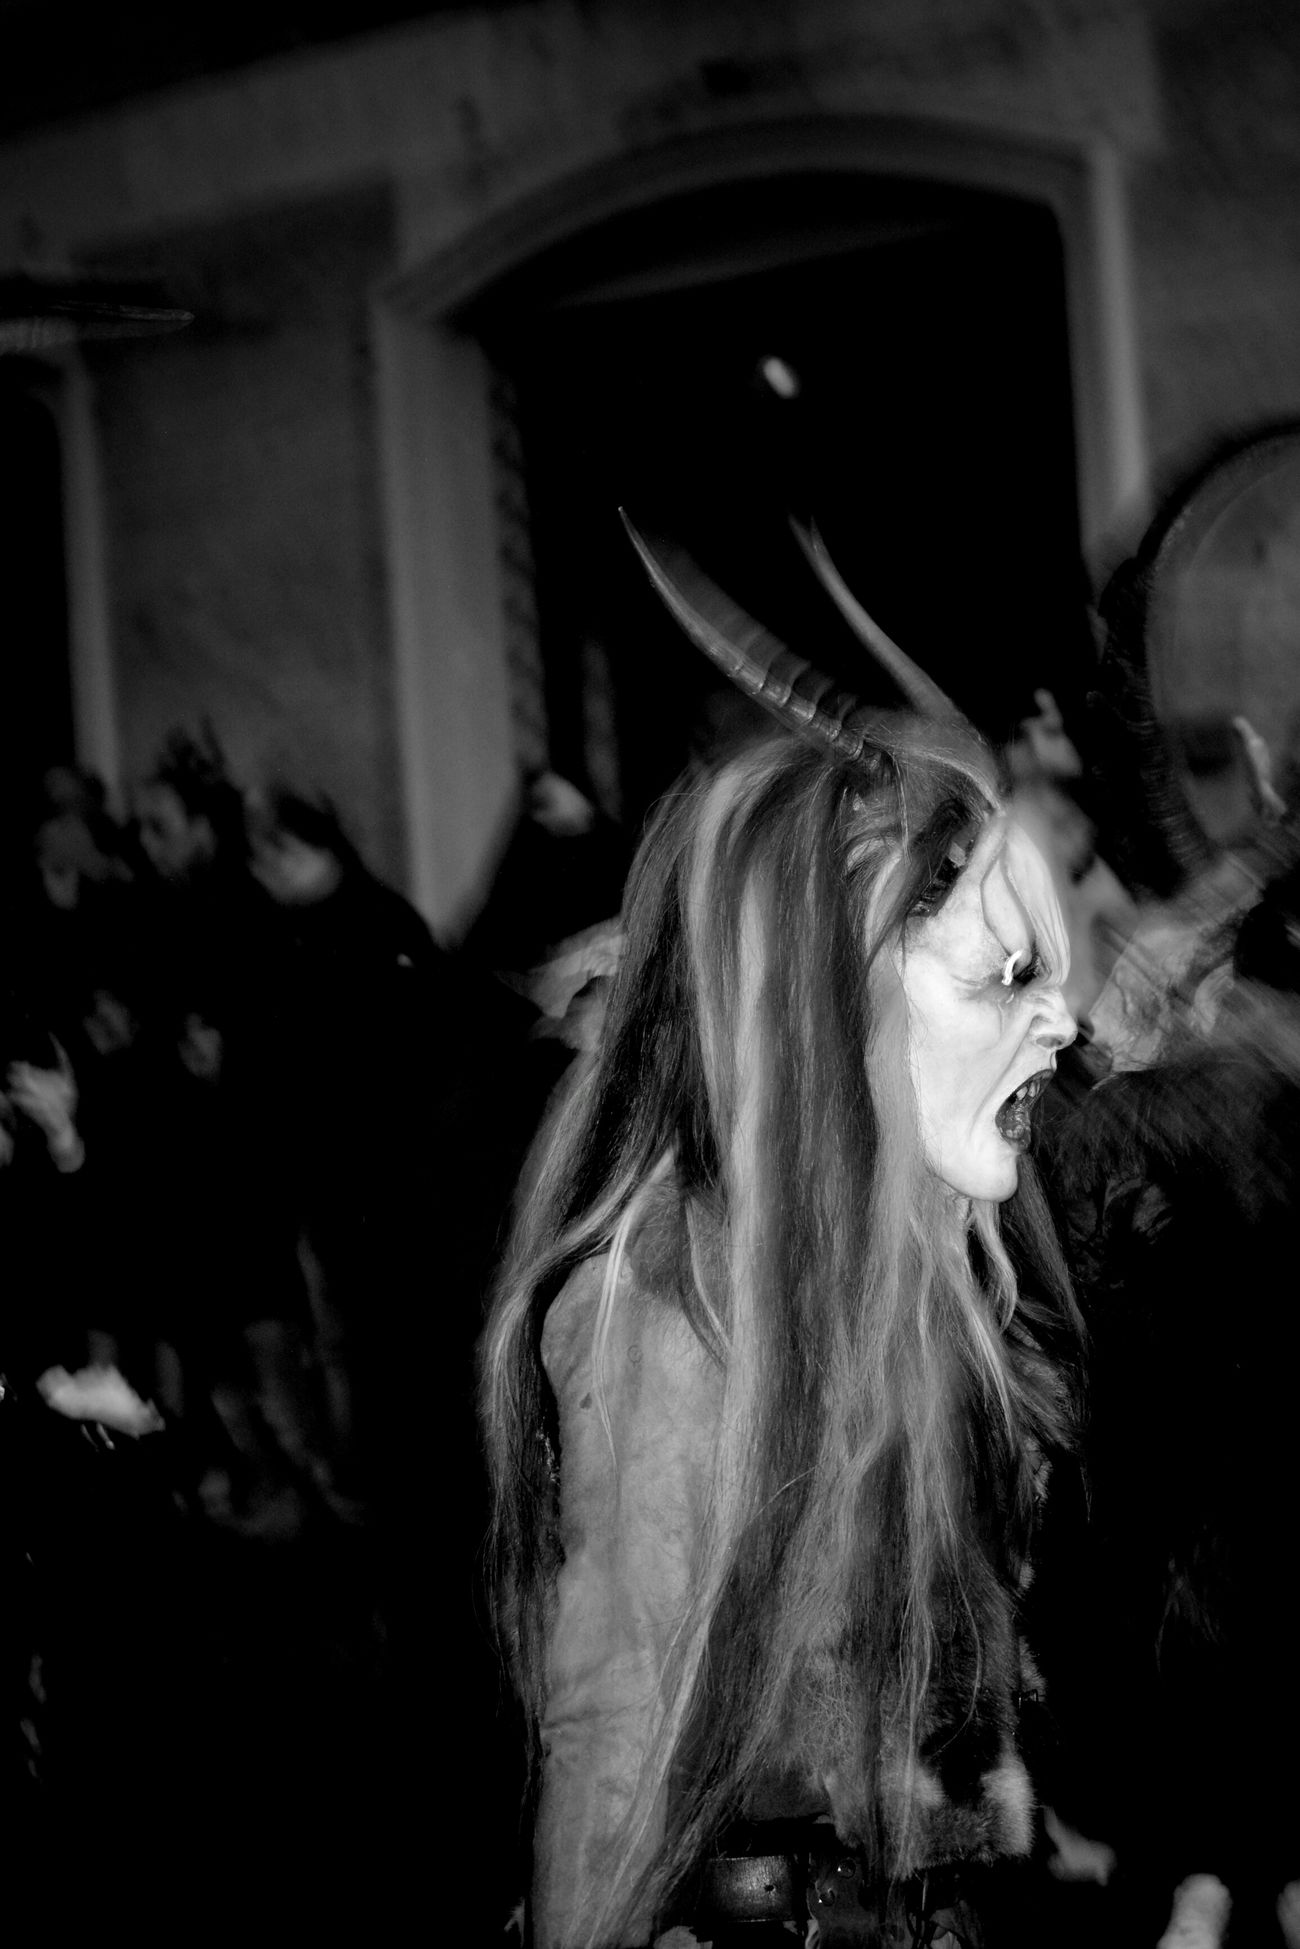 Demon Horns Night Photography Nightphotography Costume Krampus Bnw_collection Black And White B&w Street Photography Streetphoto_bw Italy Italia Macomer Sardegna Sardinia Sardegna Italy  Nikon D5200